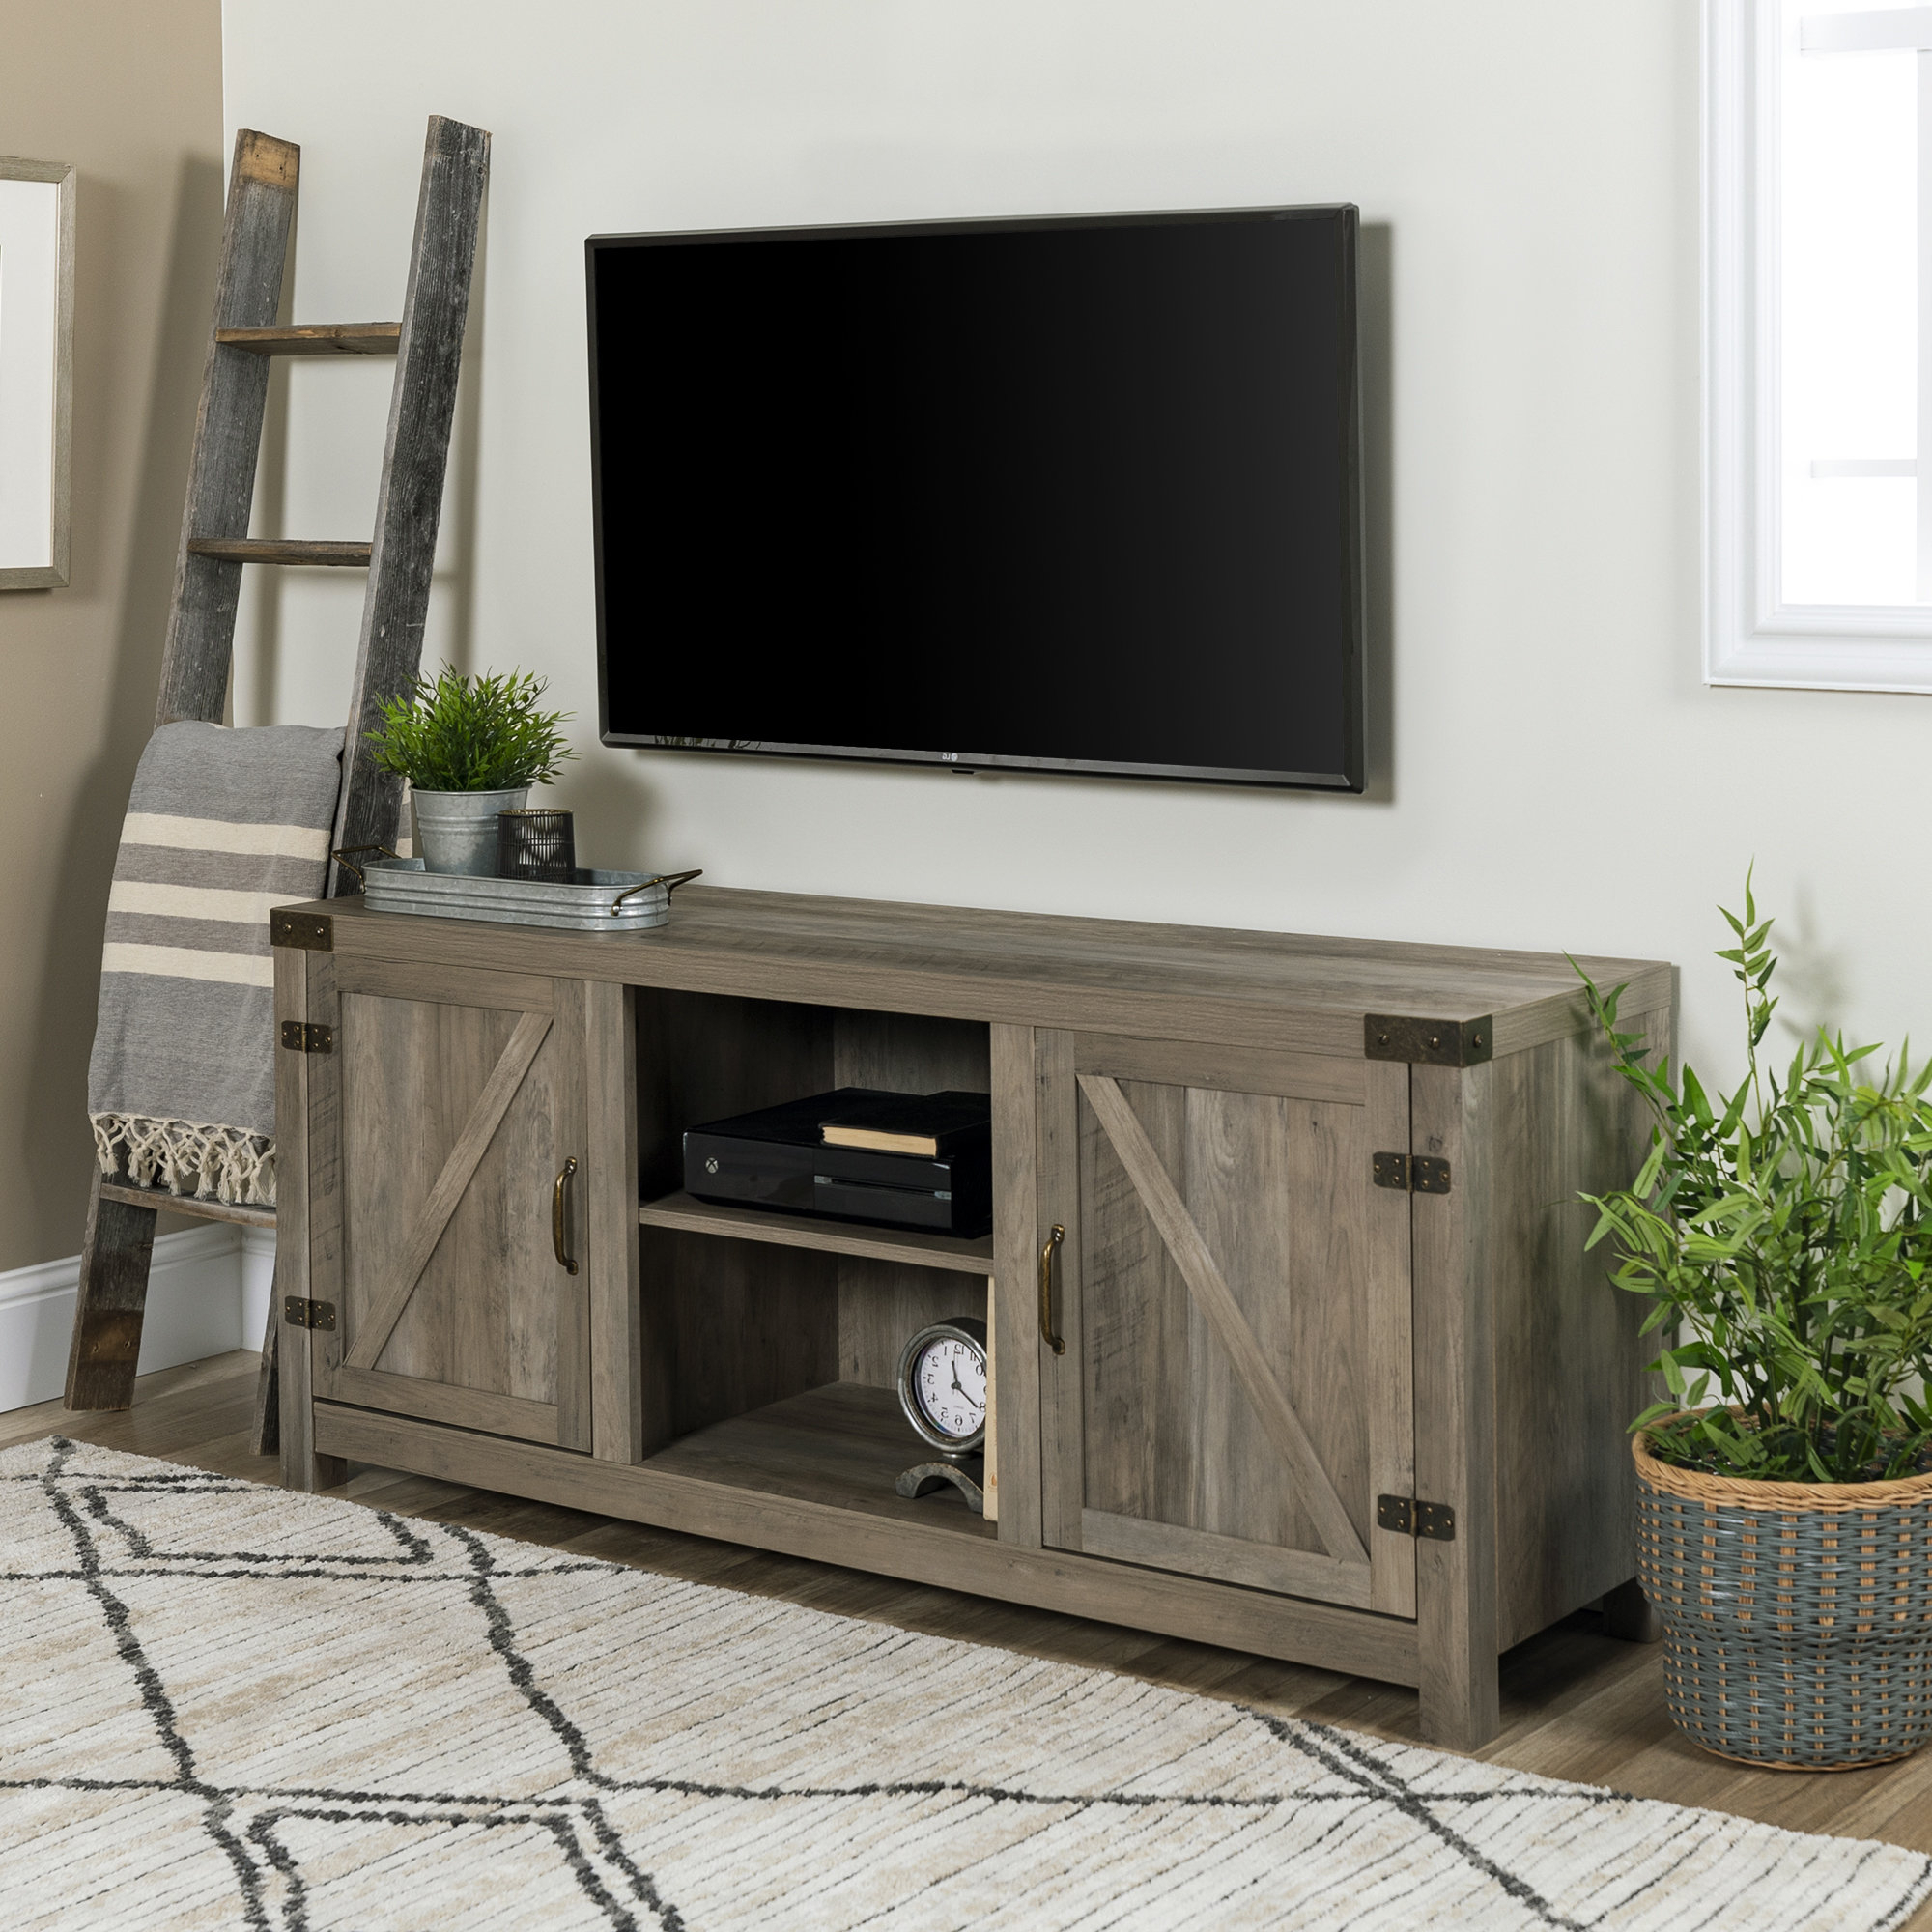 2017 Ducar 74 Inch Tv Stands Throughout Tv Stands & Entertainment Centers You'll Love (View 7 of 20)